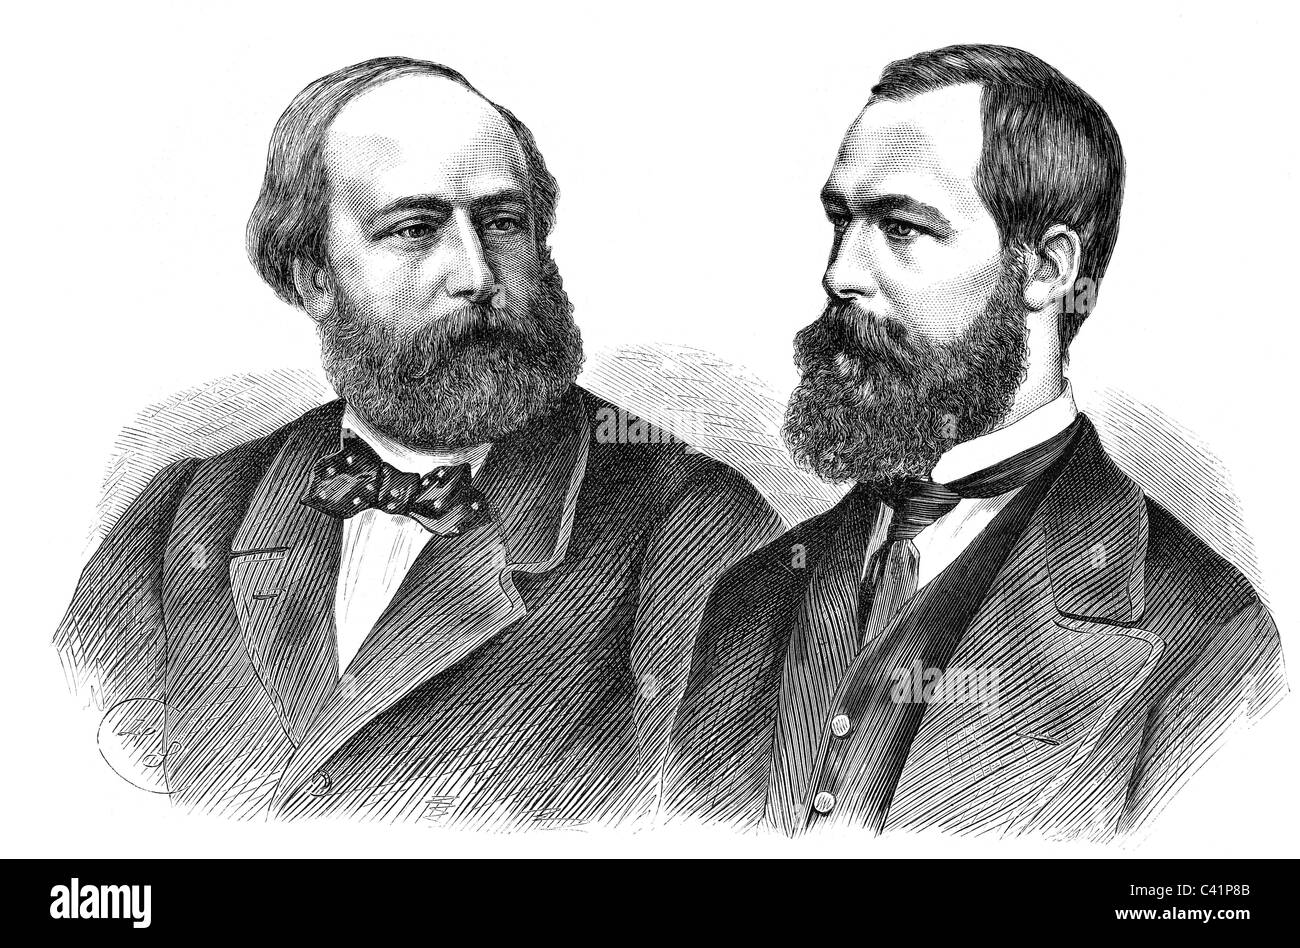 Henry Charles 29.9.1820 - 24.8.1883, Count of Chambord, Pretender to the Throne of France 1836 - 1883, portrait, - Stock Image